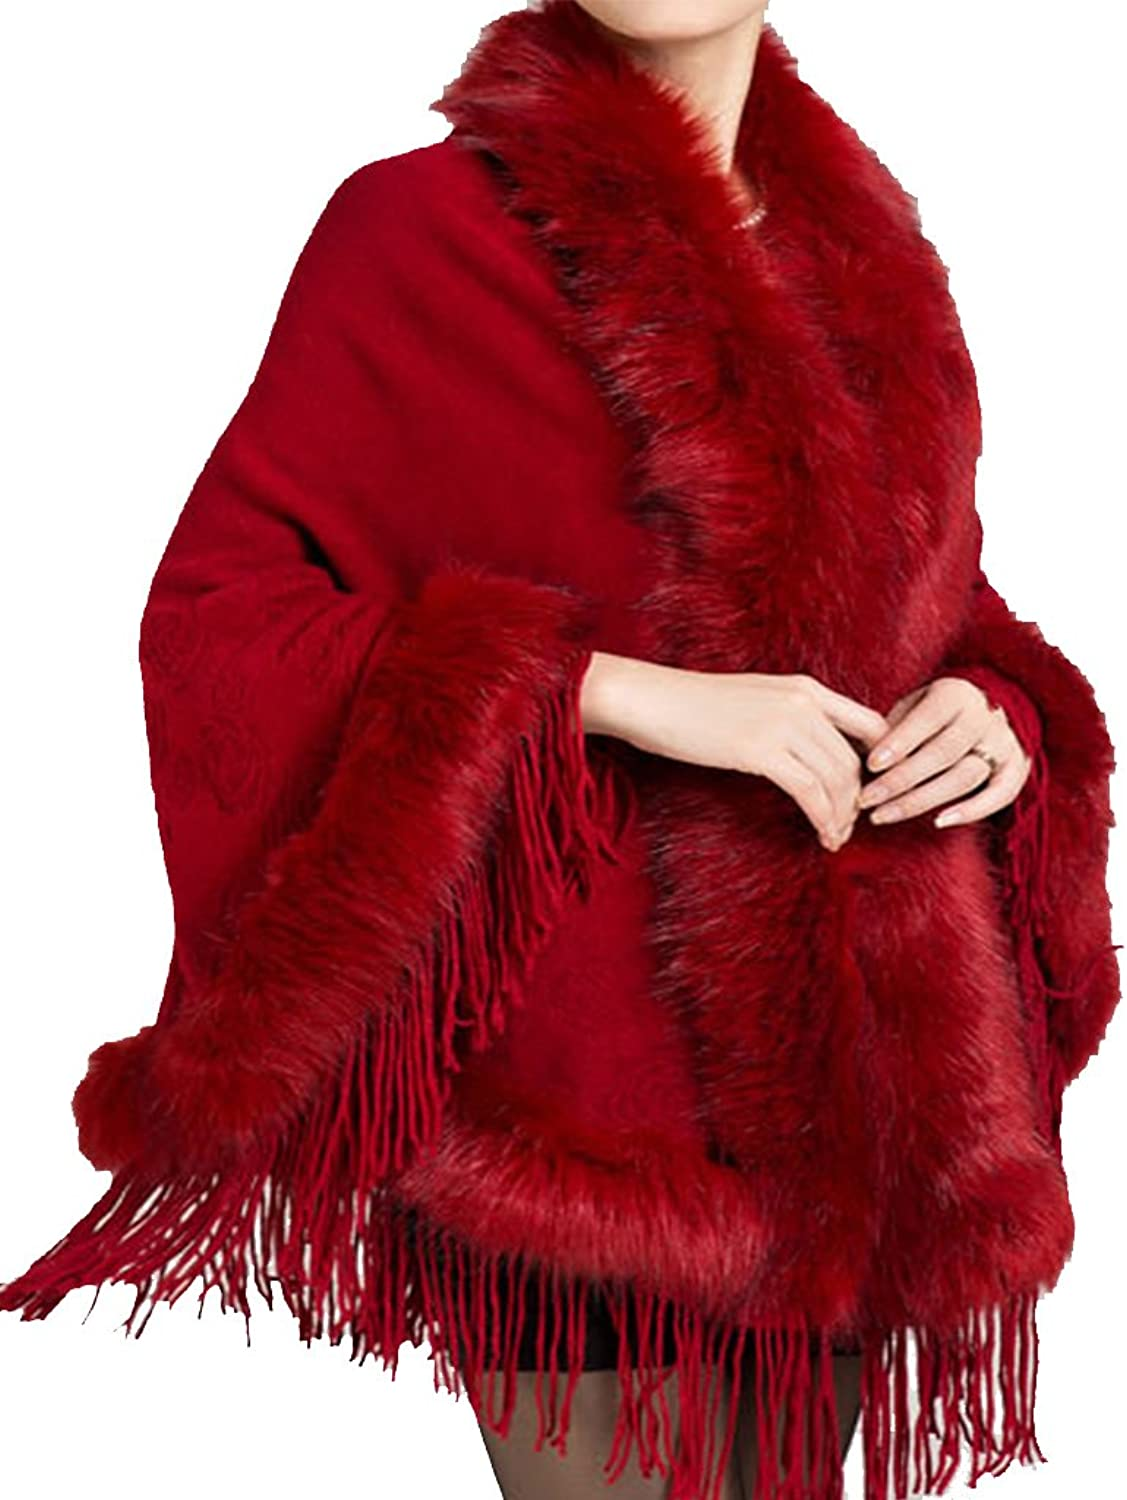 Helan Women's Faux Mink Fur Shawl Cloak Cape Coat With Tassels